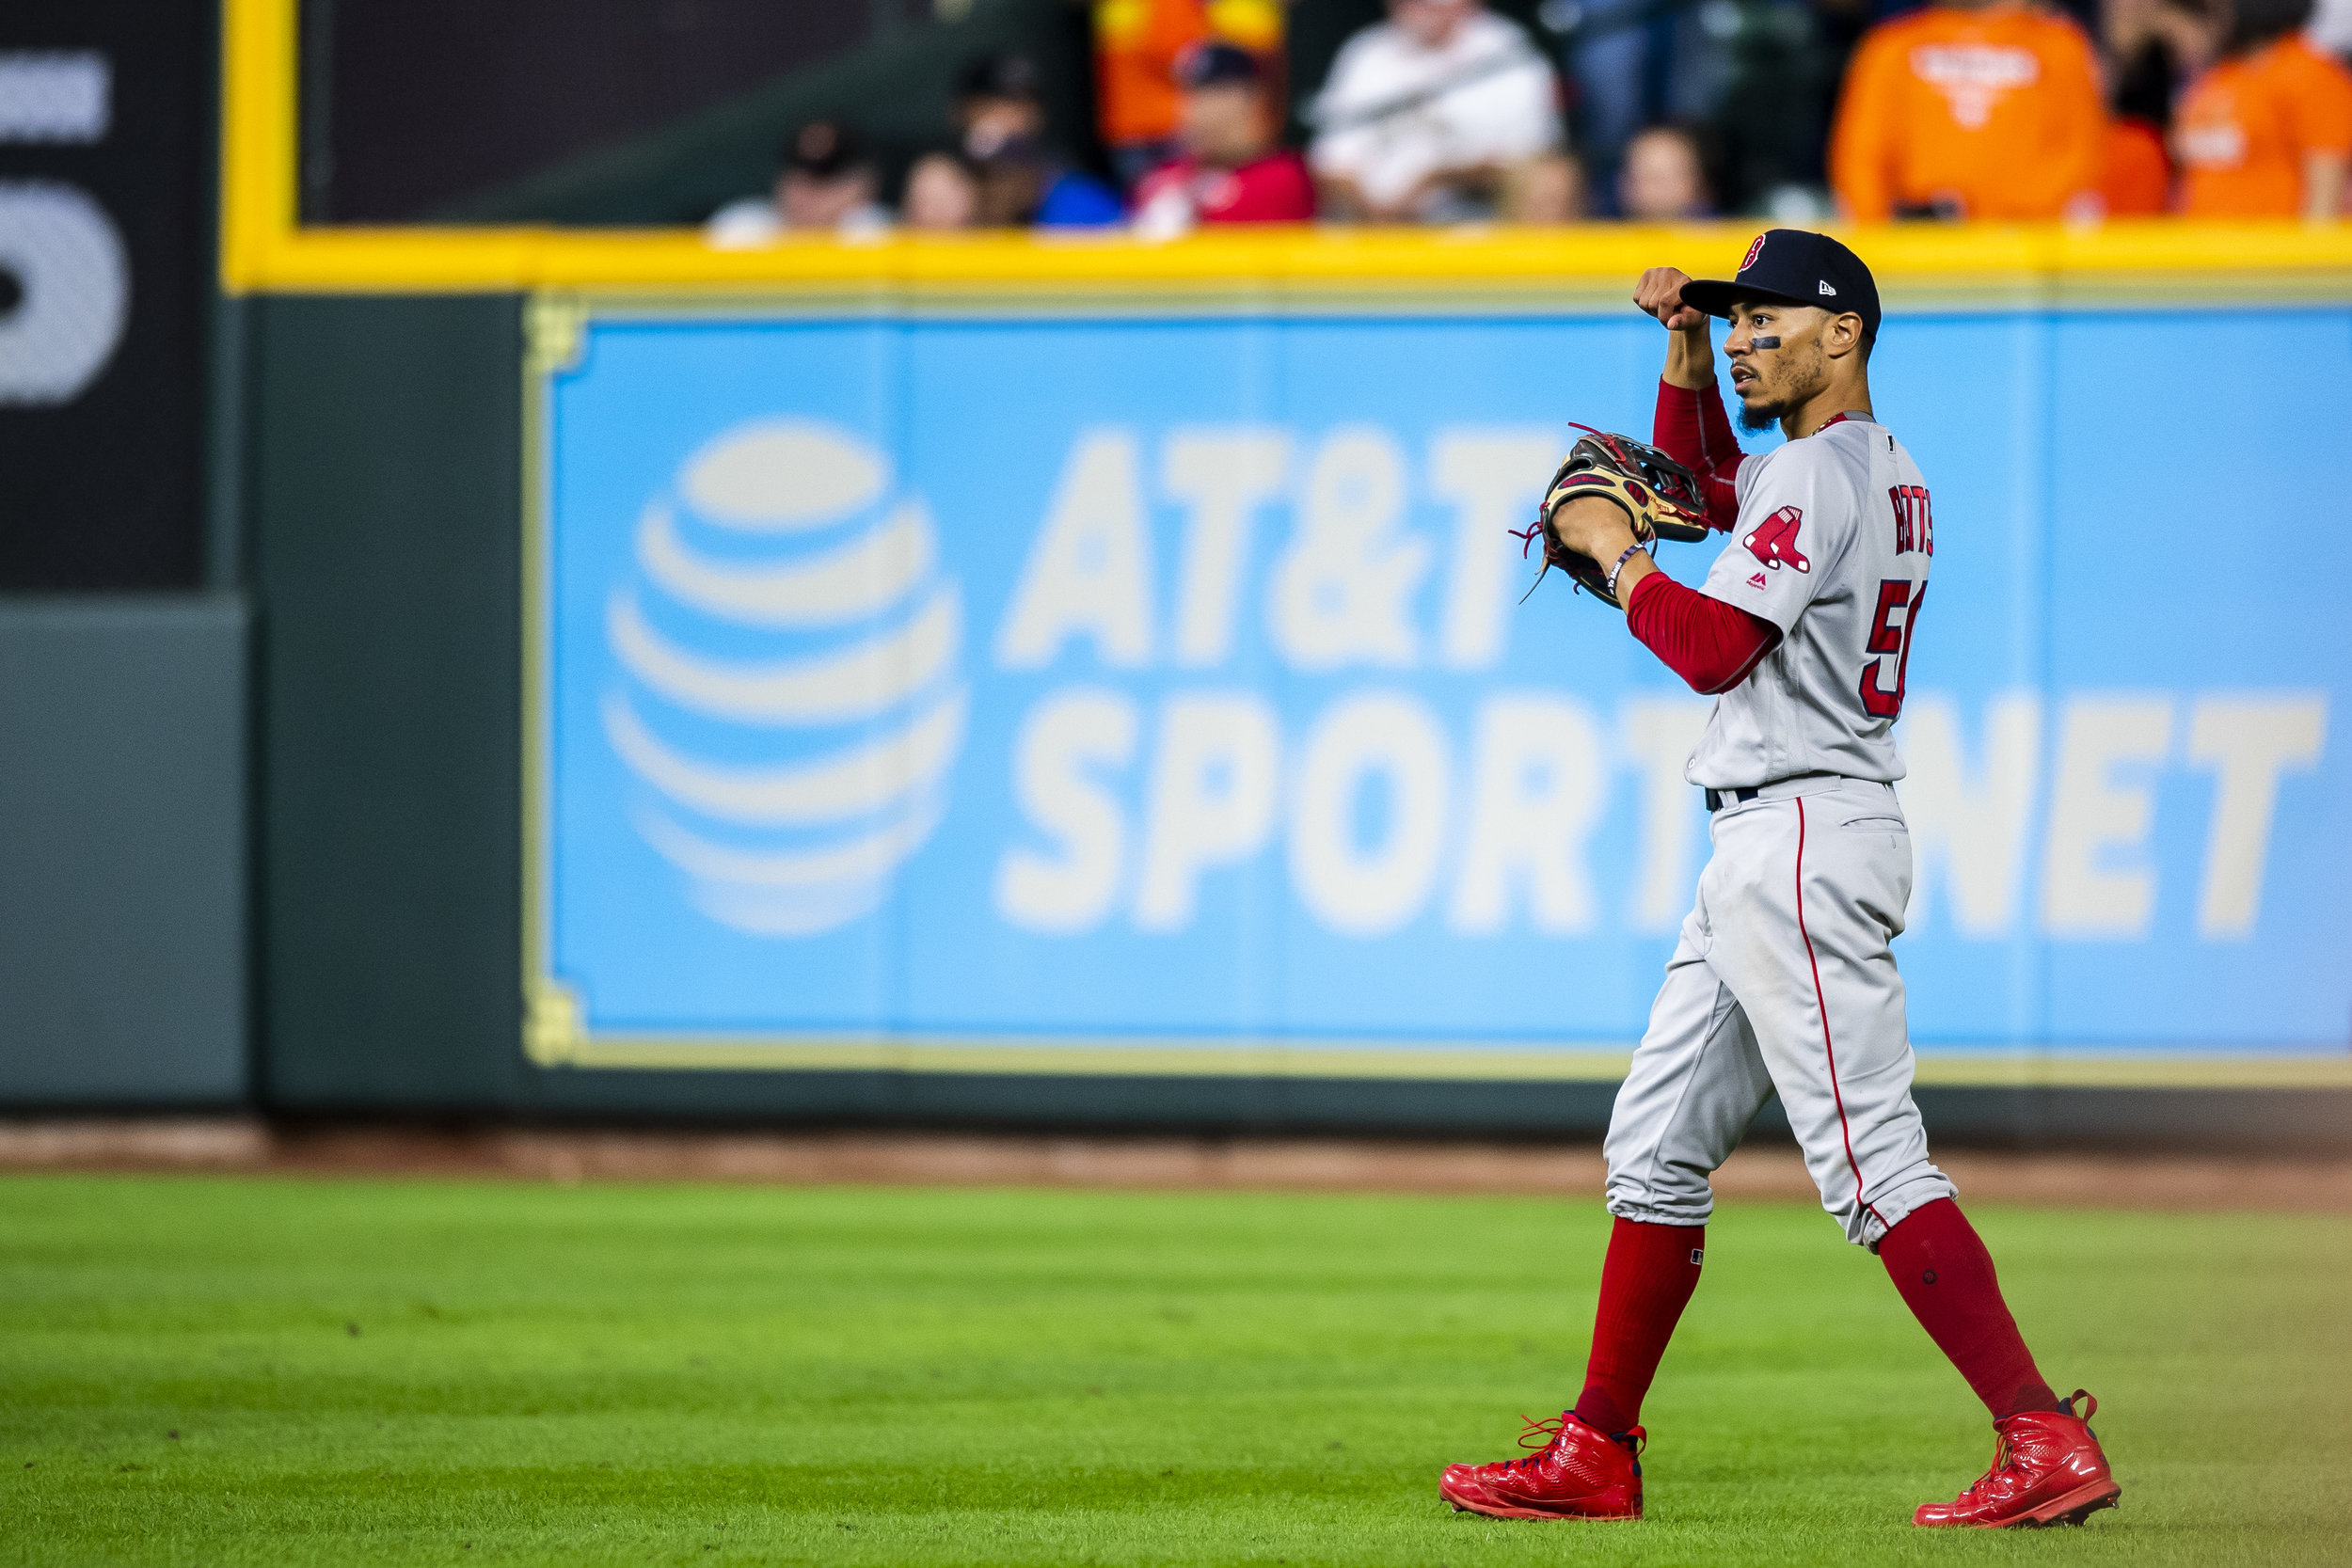 October 17, 2018, Houston, TX: Boston Red Sox outfielder Mookie Betts points to his biceps and flexes after throwing out a runner at second base as the Boston Red Sox face the Houston Astros in Game 4 of the ALCS at Minute Maid Park in Houston, Texas on Wednesday, October 17, 2018. (Photo by Matthew Thomas/Boston Red Sox)